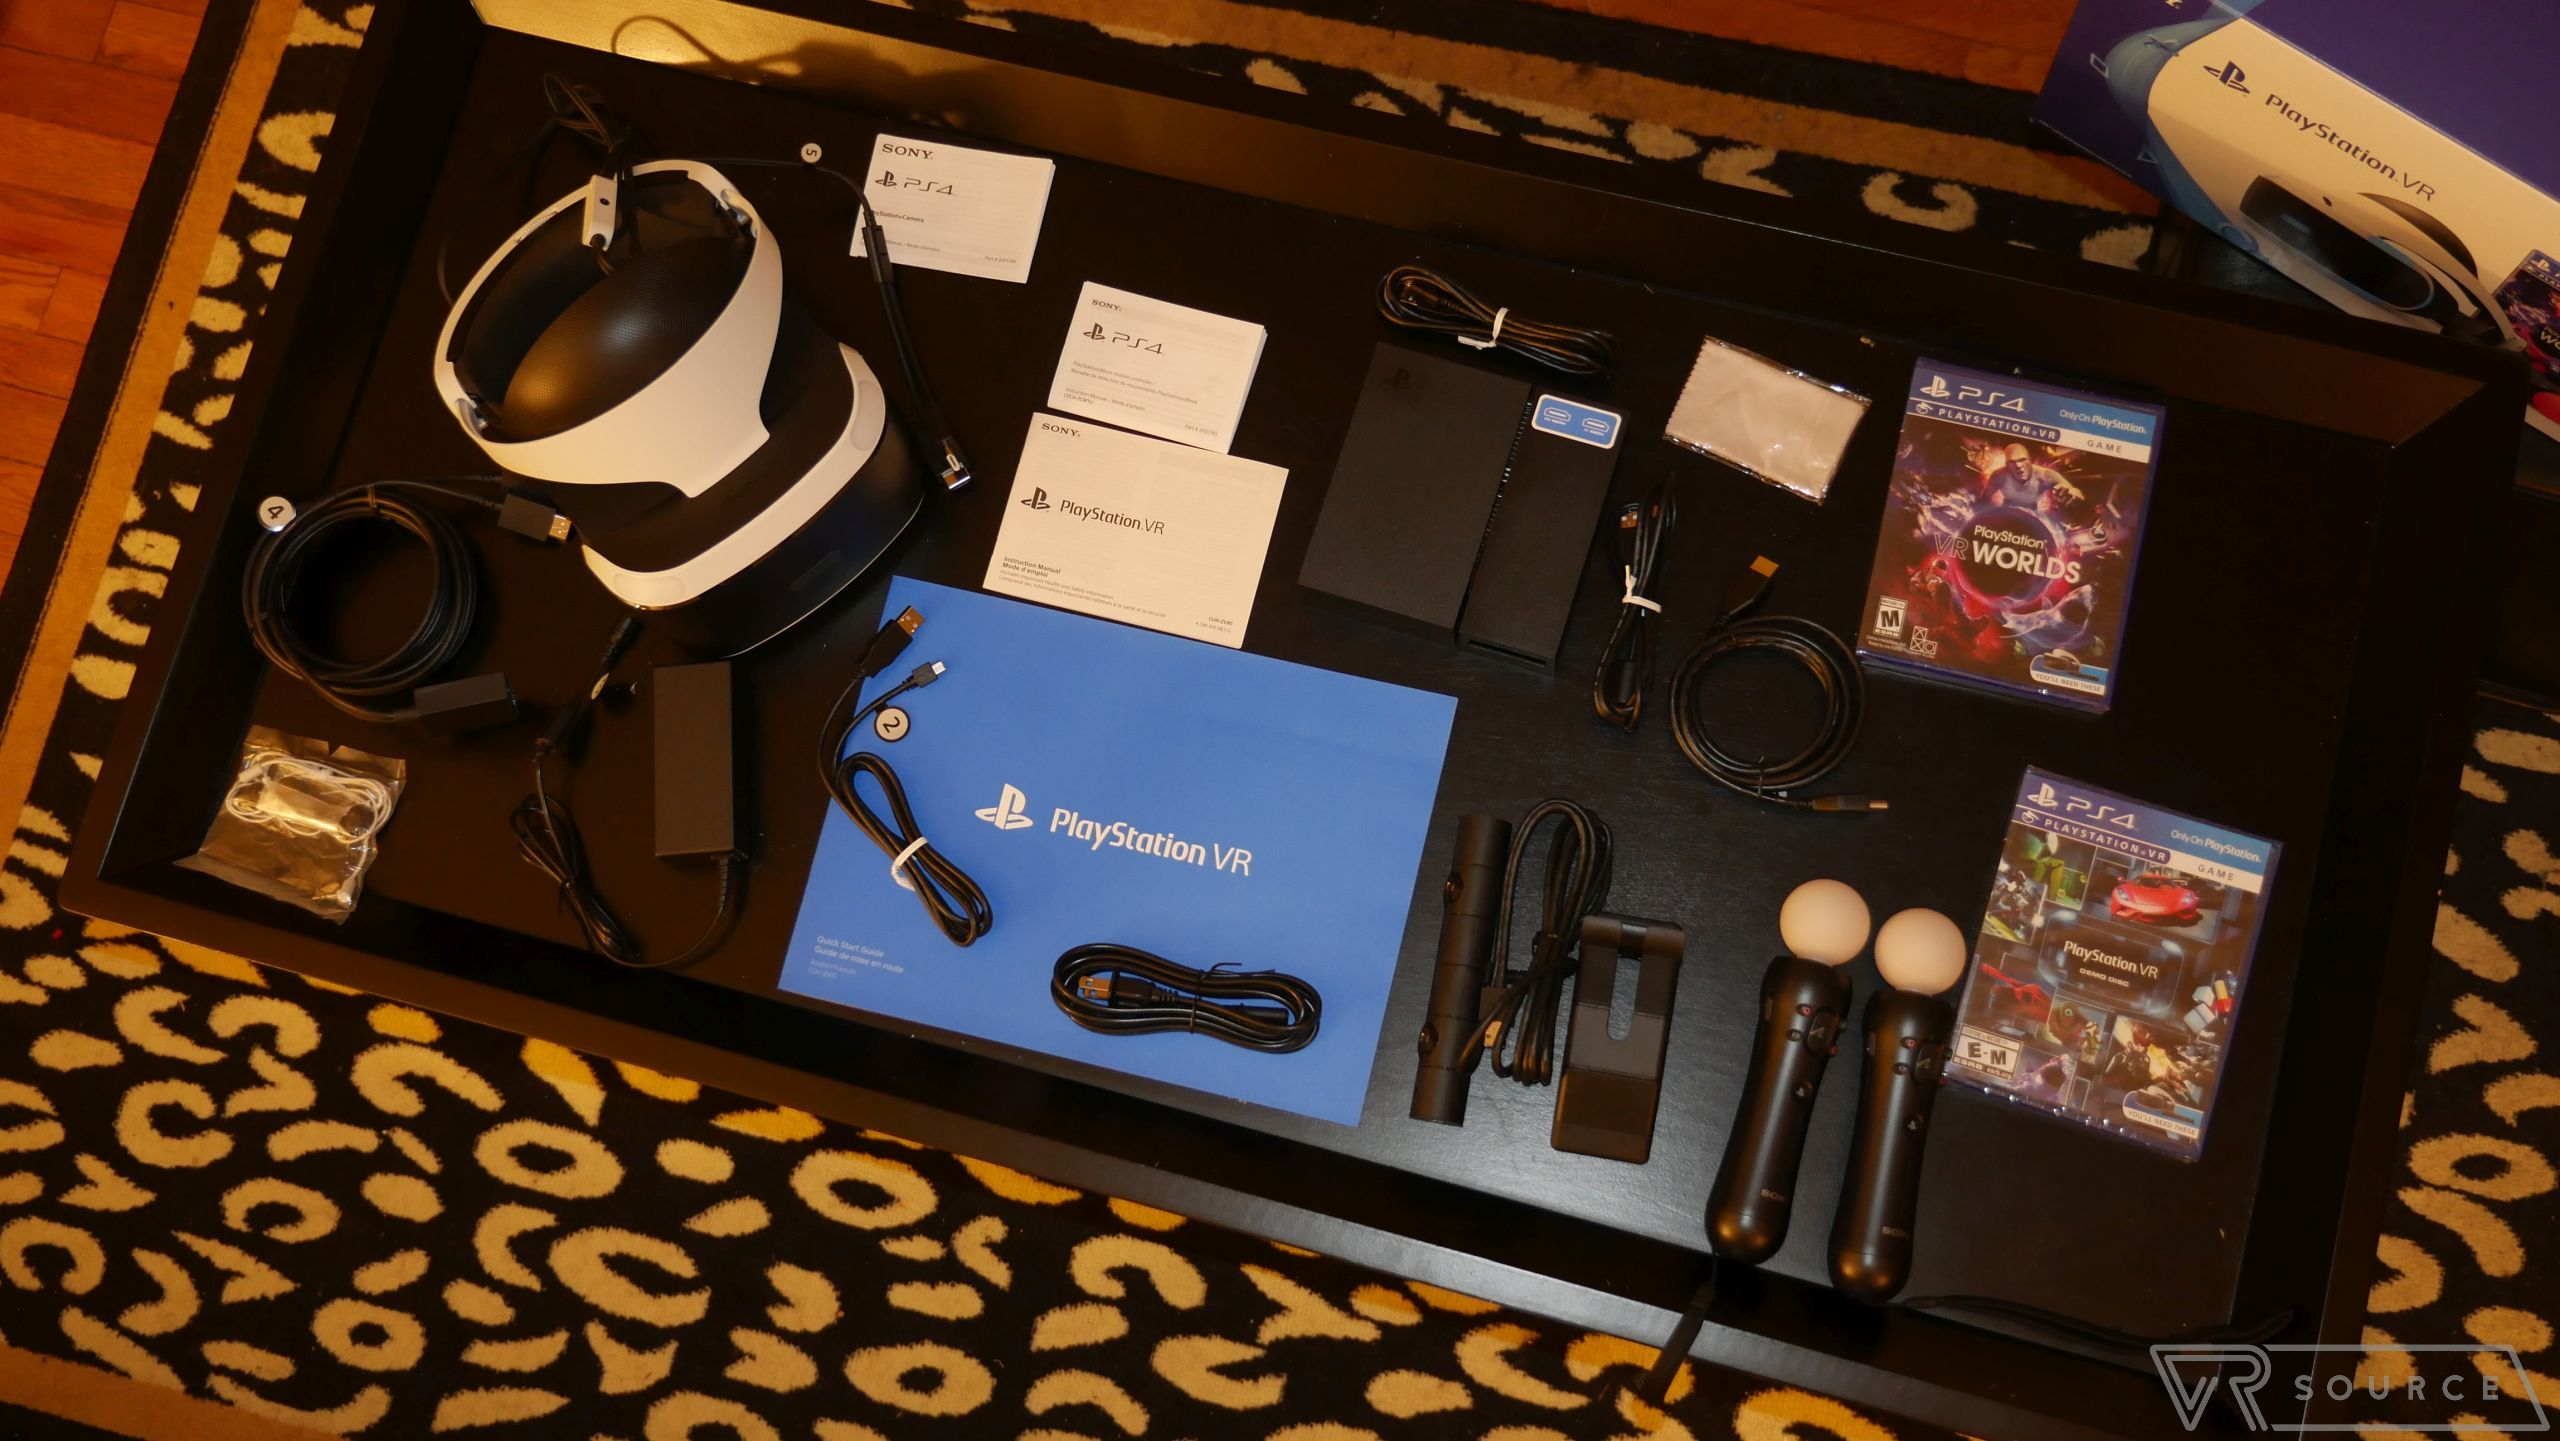 Sony Playstation Vr Unboxing Sony Playstation Vr Playstation Vr Playstation